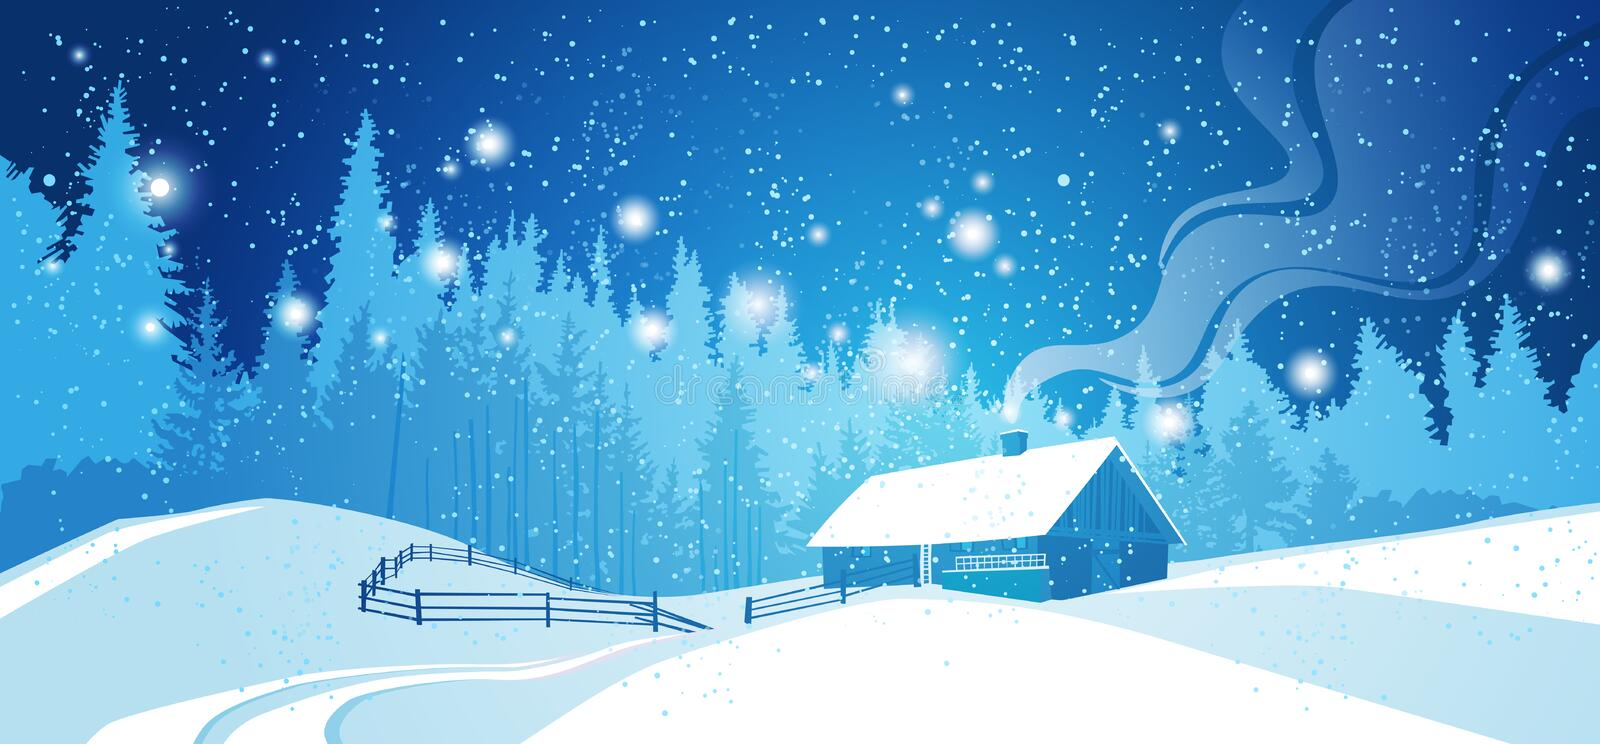 Winter Night Landscape Countryside Snowy House With Pine Tree Forest Over Blue Sky With Stars royalty free illustration